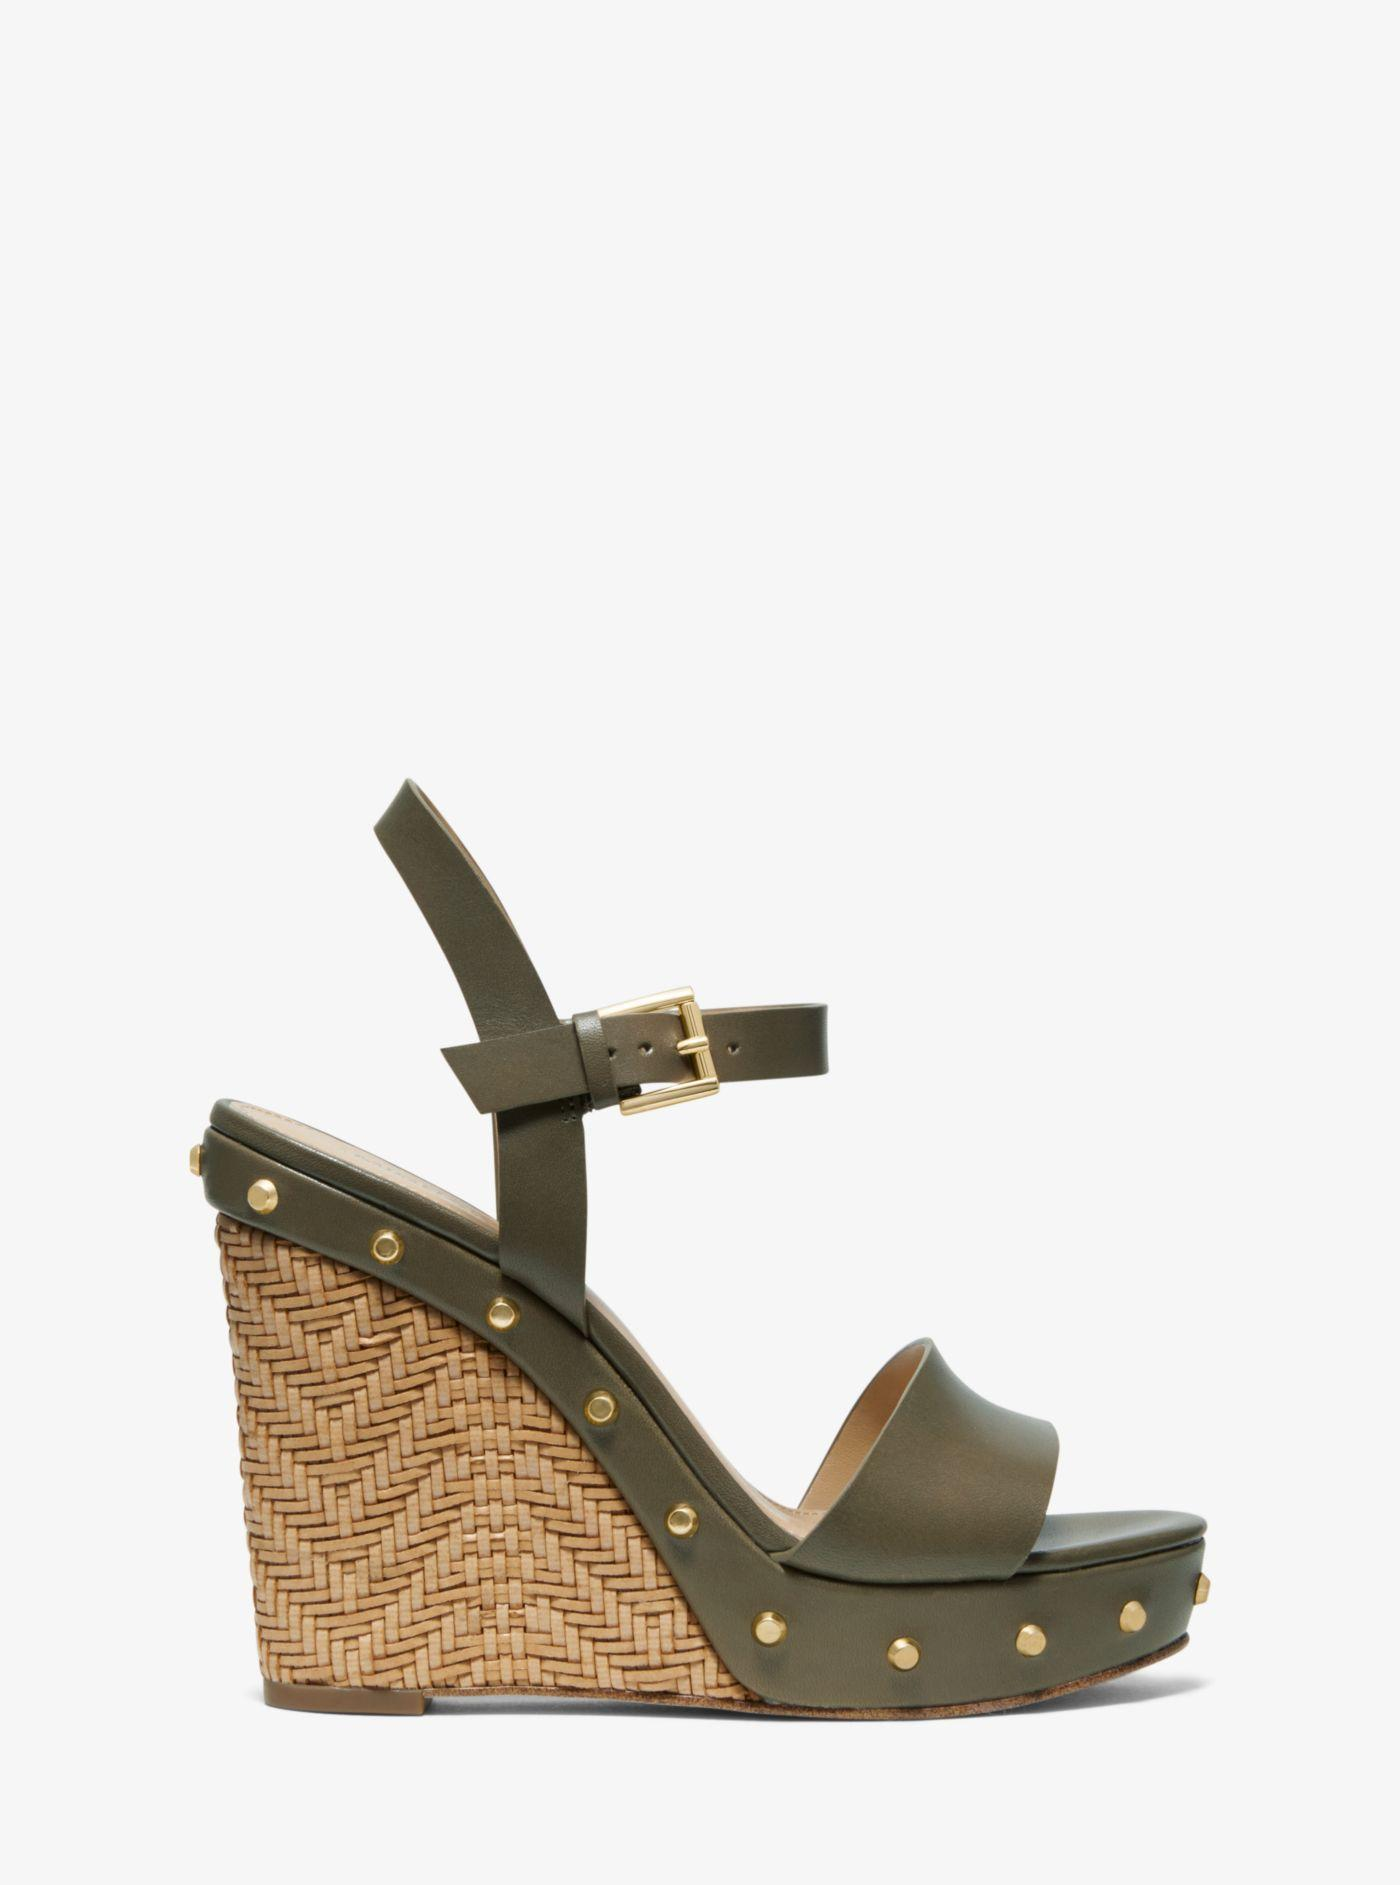 41925d7a94f6 Michael Kors - Green Ellen Leather Wedge - Lyst. View fullscreen